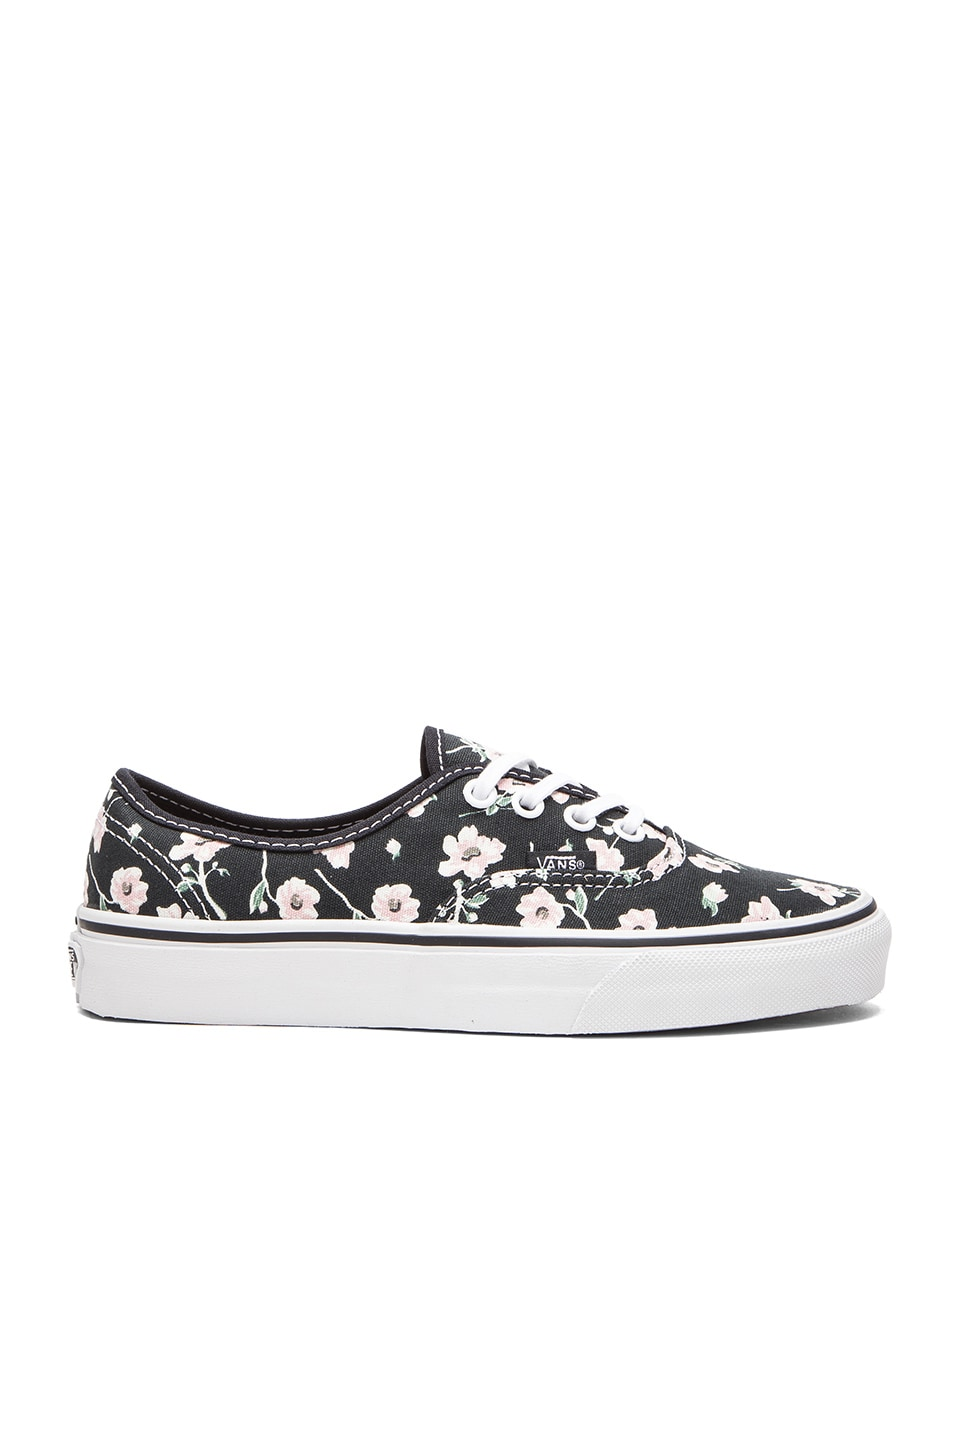 Vans Authentic Vintage Floral Sneaker in Blue Graphite